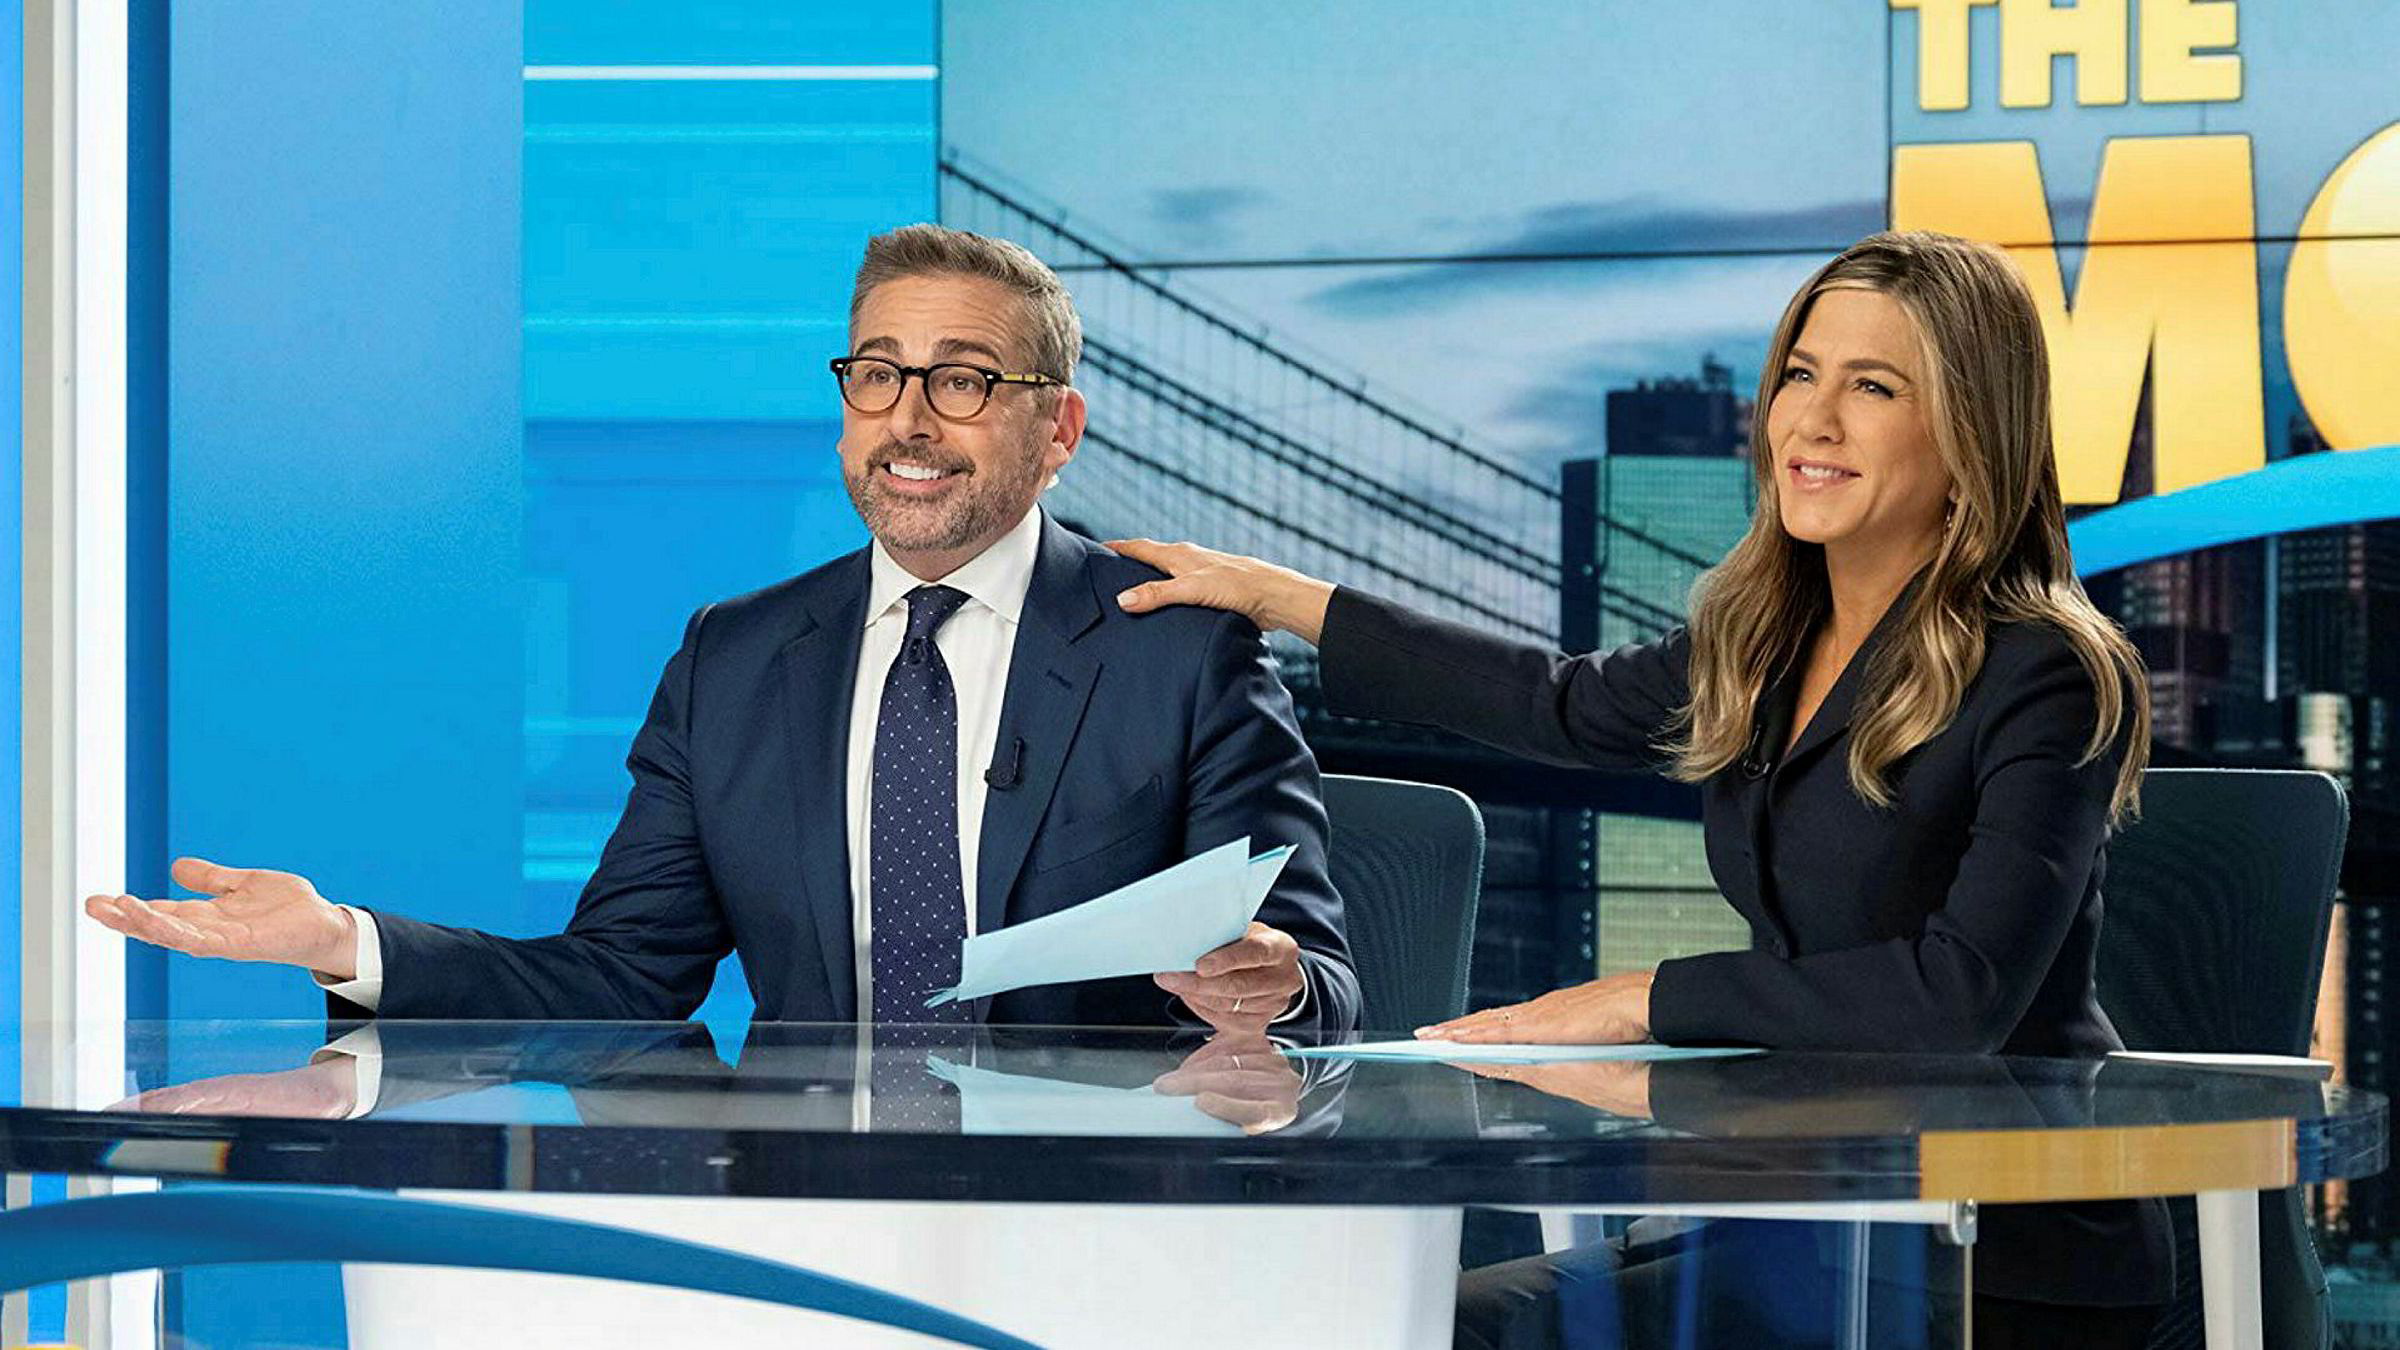 Tv-verten Mitch (Steve Carell) er metoo-sparket i tv-serien «The Morning show». Hans motpart Alex (Jennifer Aniston) kjemper for sin posisjon som tv-anker.